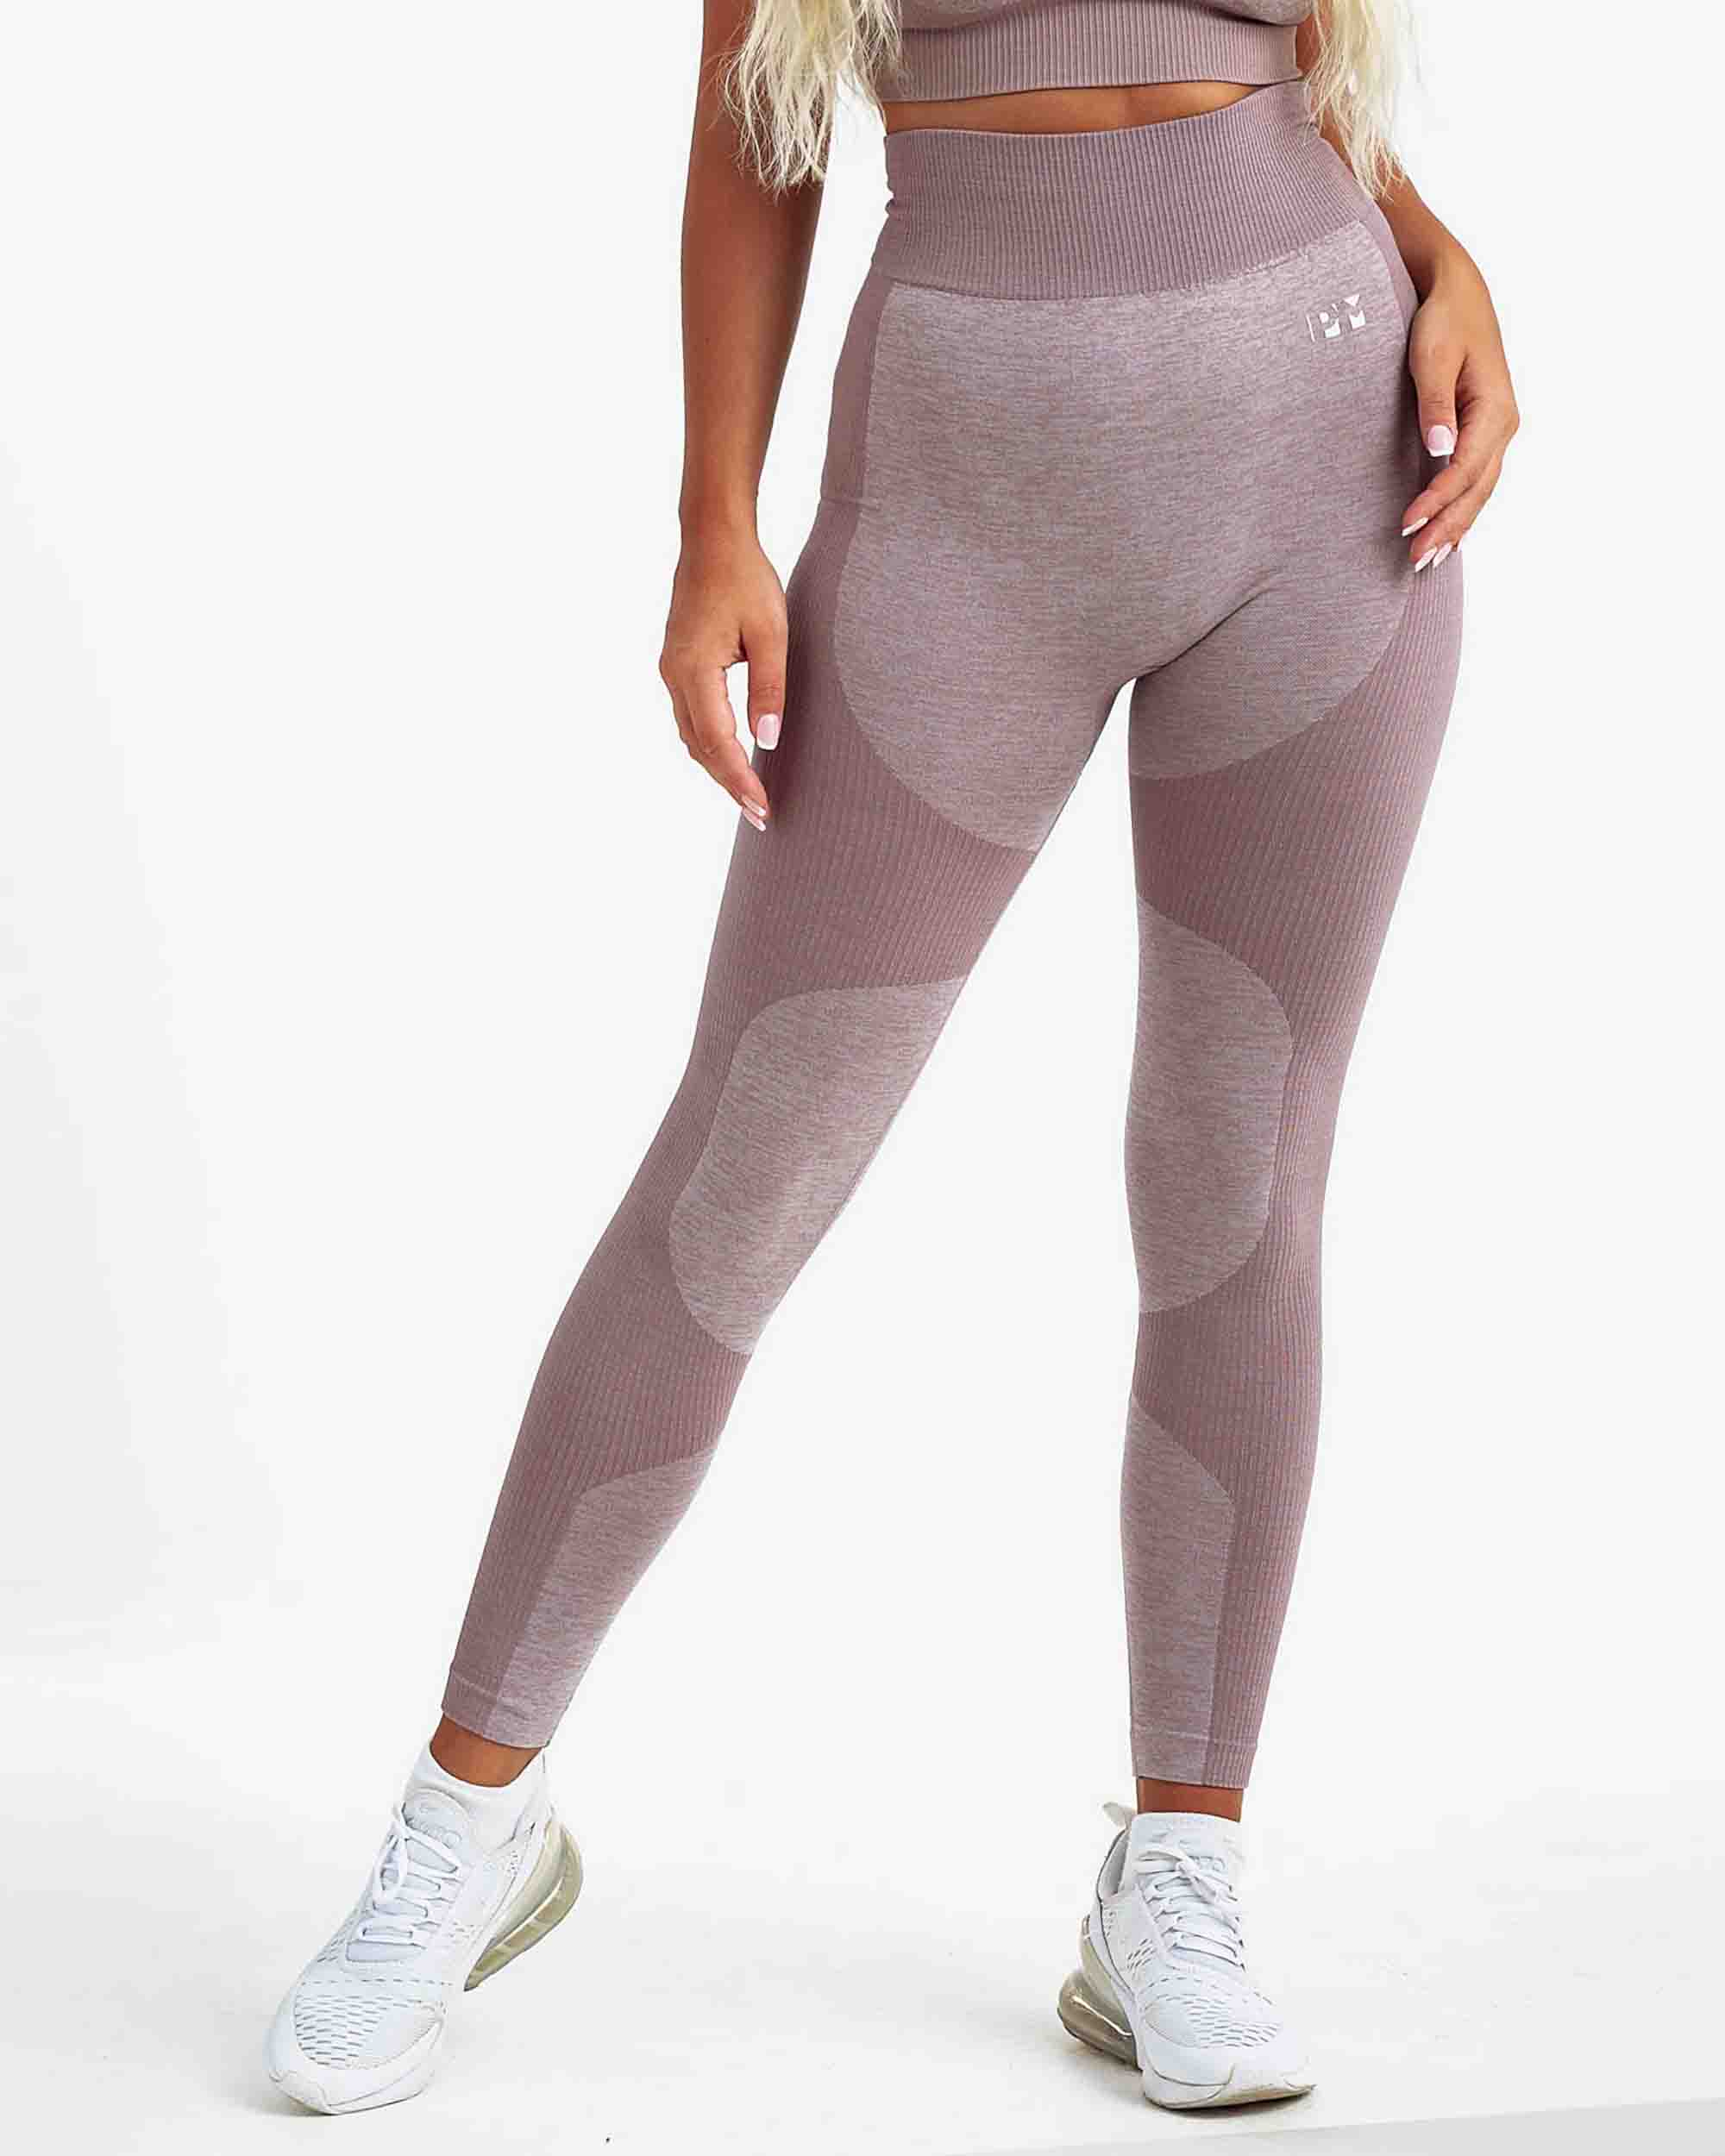 PM STRETCHY SEAMLESS LEGGINGS BROWN